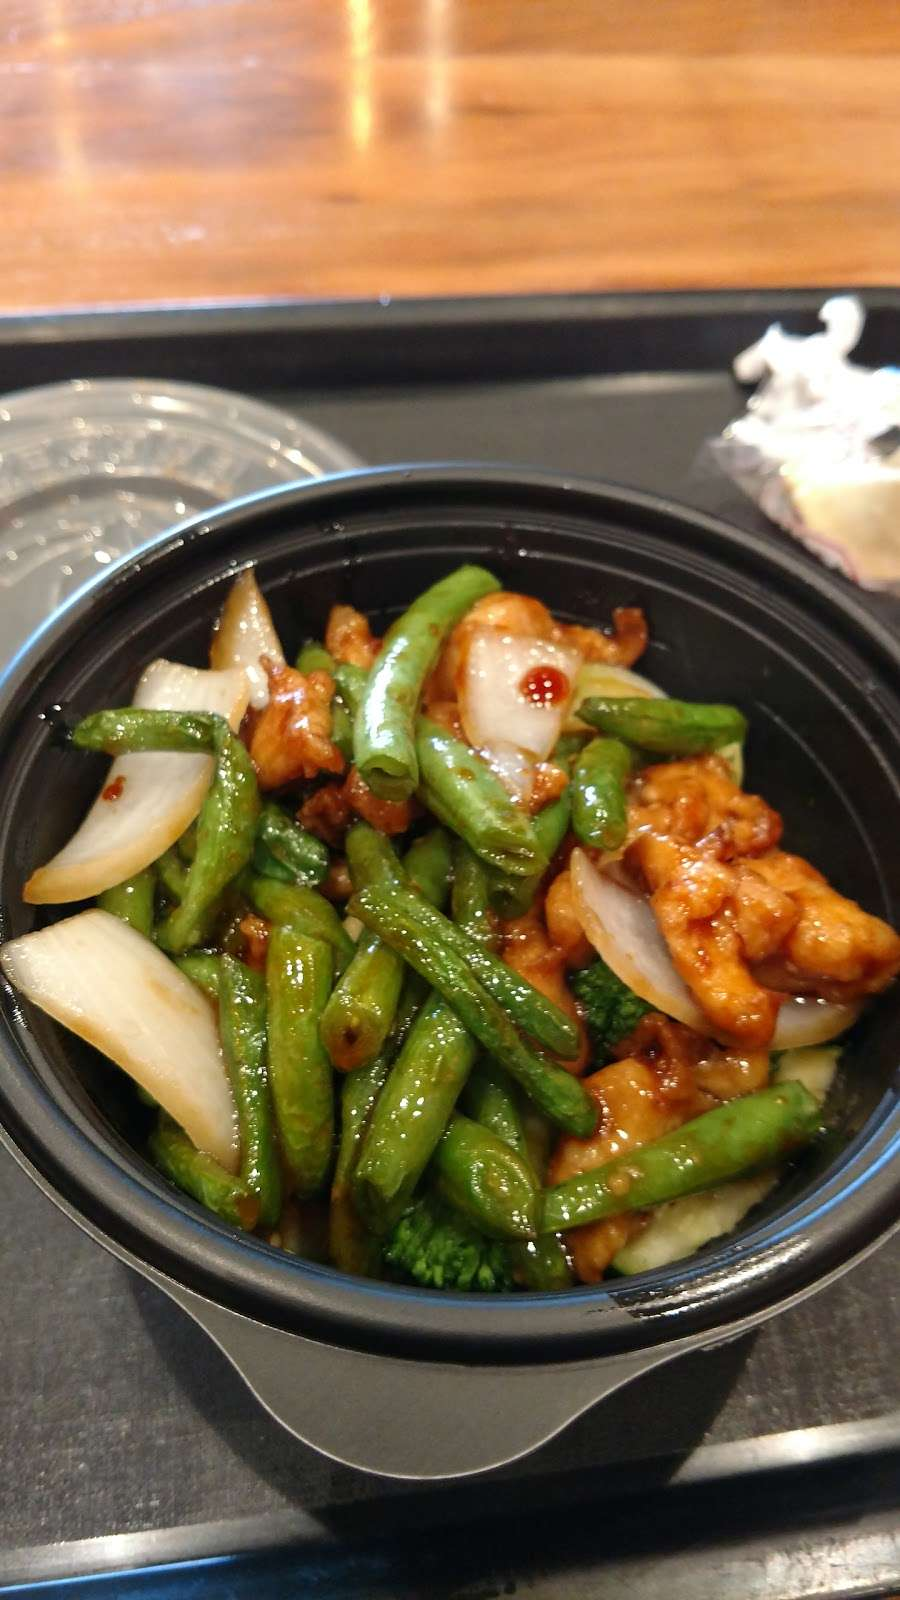 Panda Express - restaurant  | Photo 1 of 10 | Address: 1225 N Dupont Hwy, Dover, DE 19901, USA | Phone: (302) 734-4798